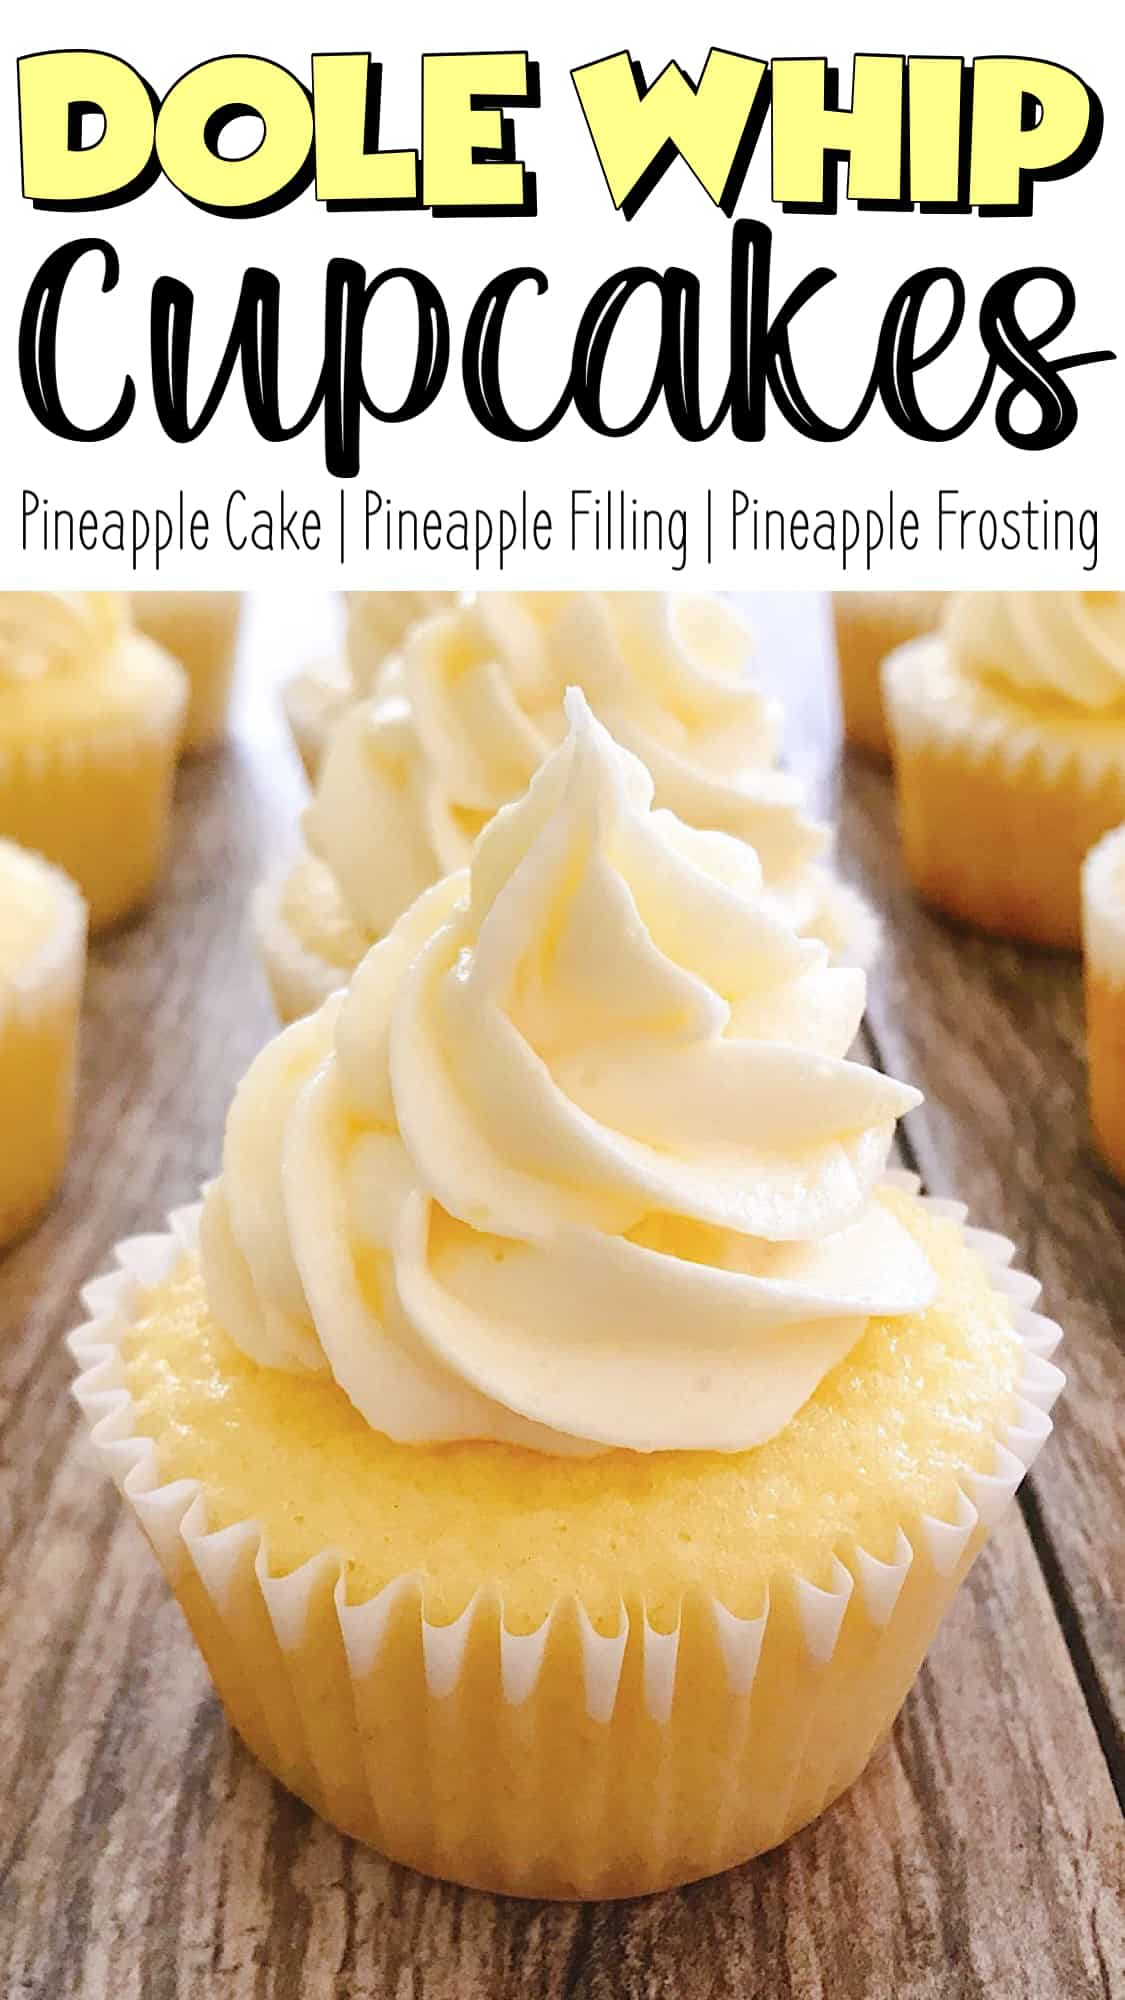 Pinterest Image for Dole Whip Cupcakes. Text that says,